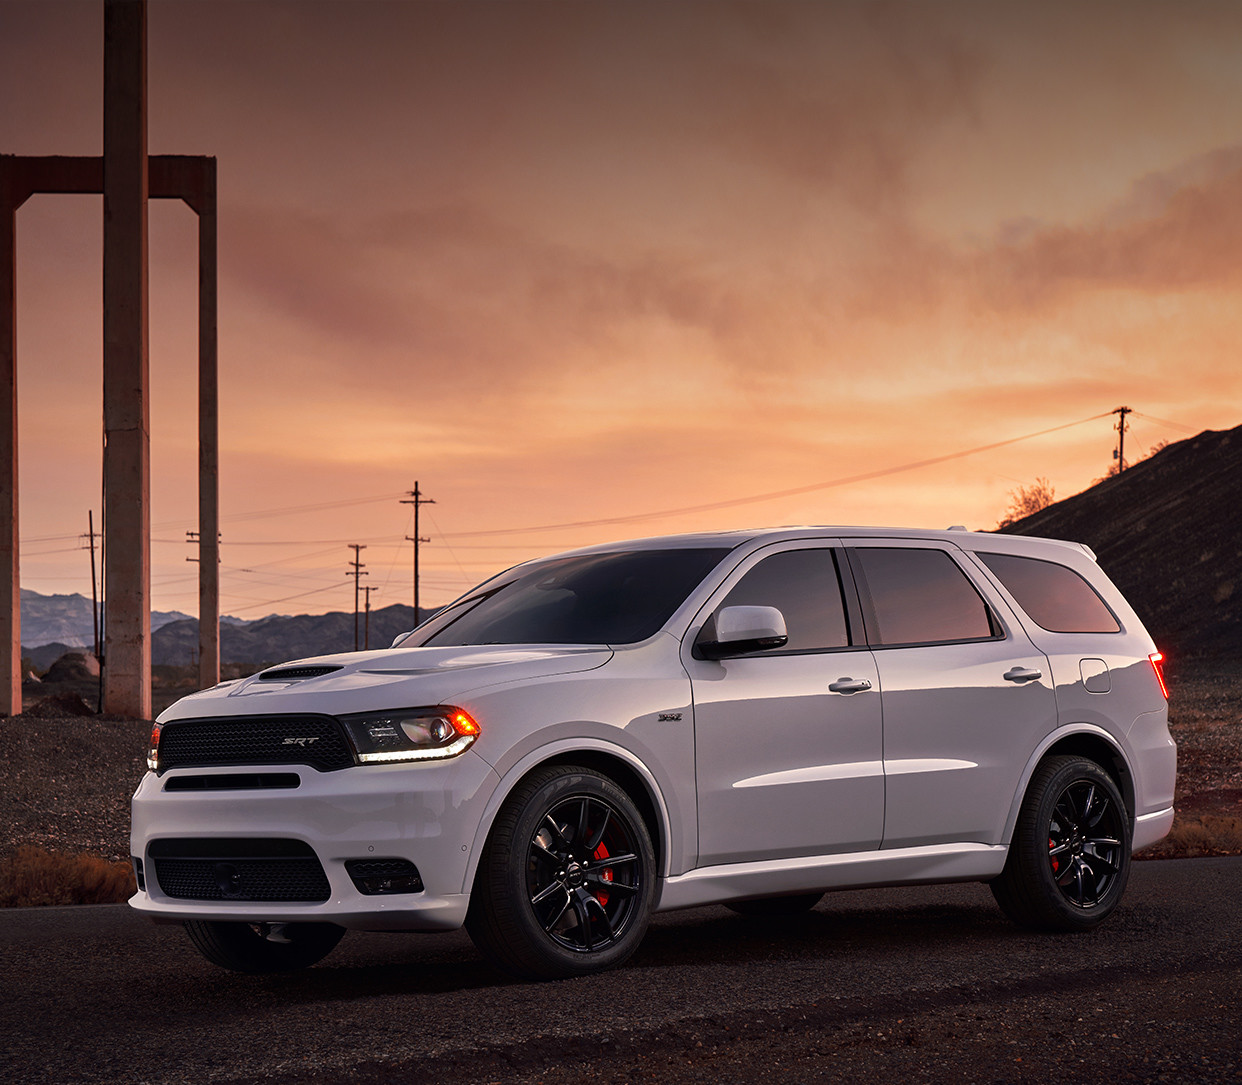 White 2019 Dodge Durango, parked on a paved road in a suburban area.